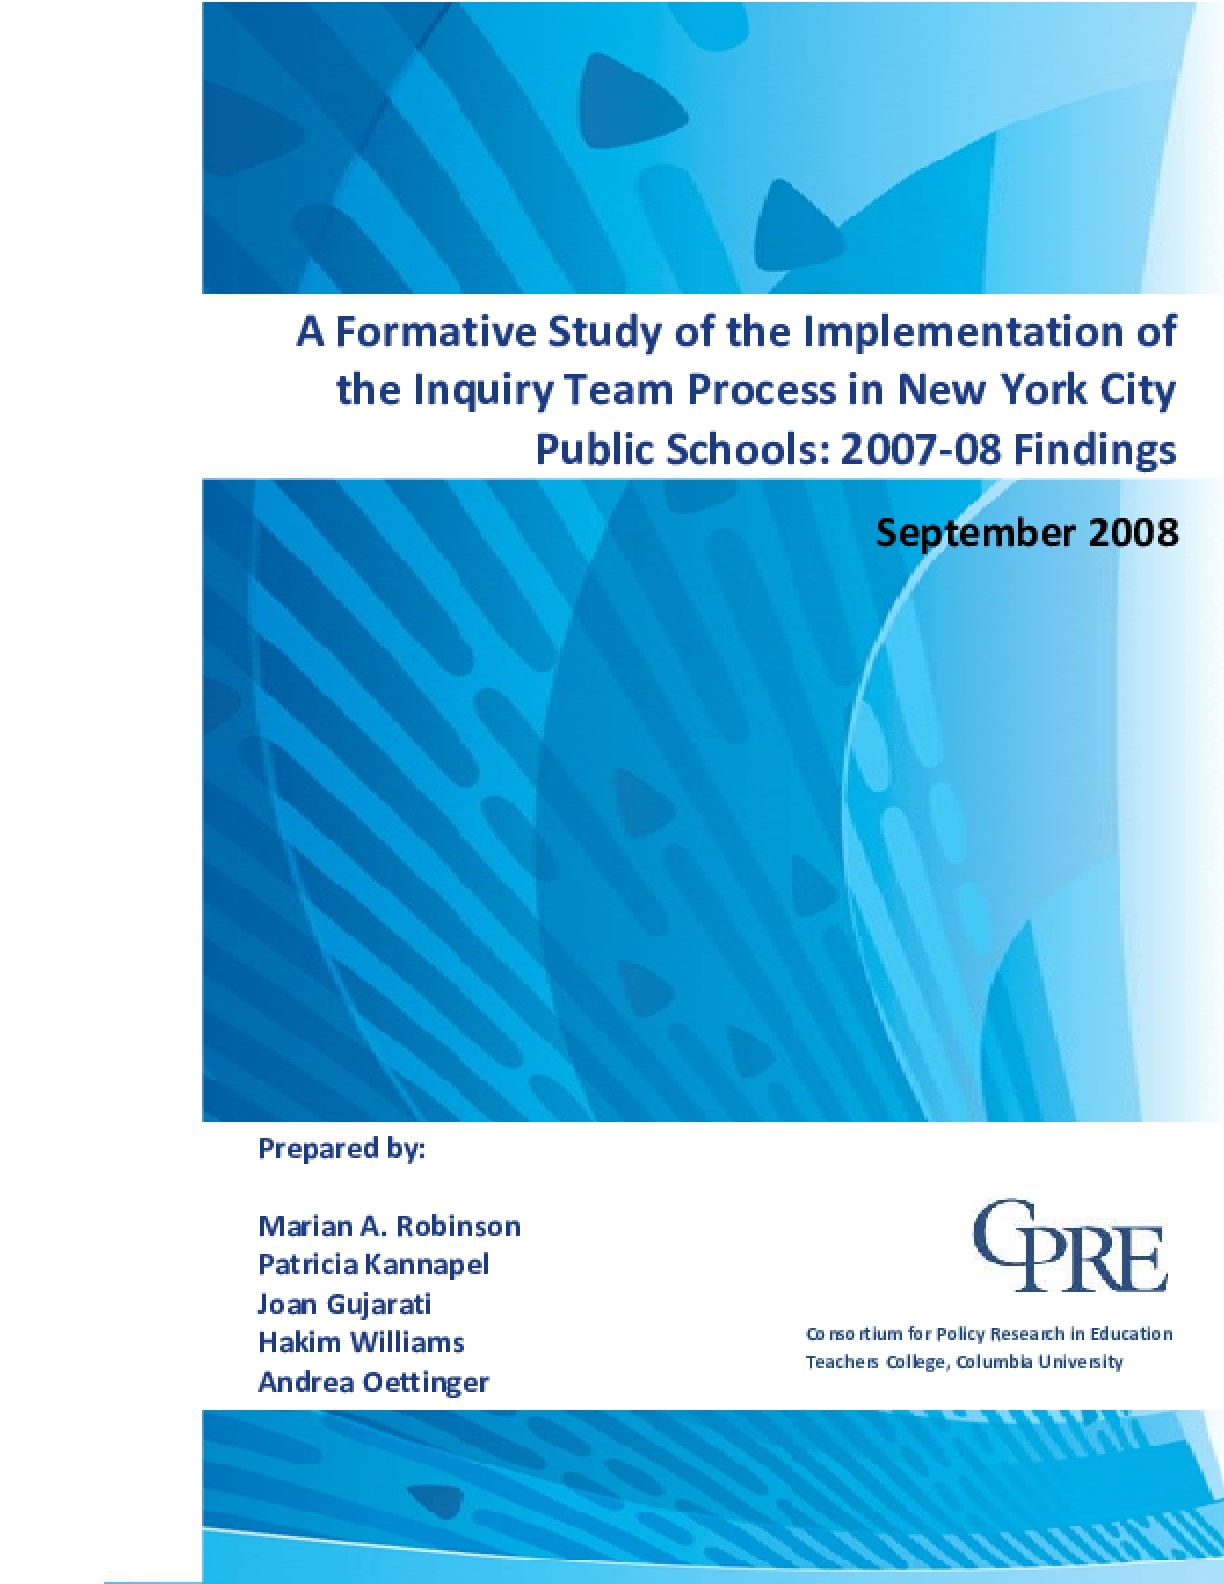 A Formative Study of the Implementation of the Inquiry Team Process in New York City Public Schools: 2007-08 Findings